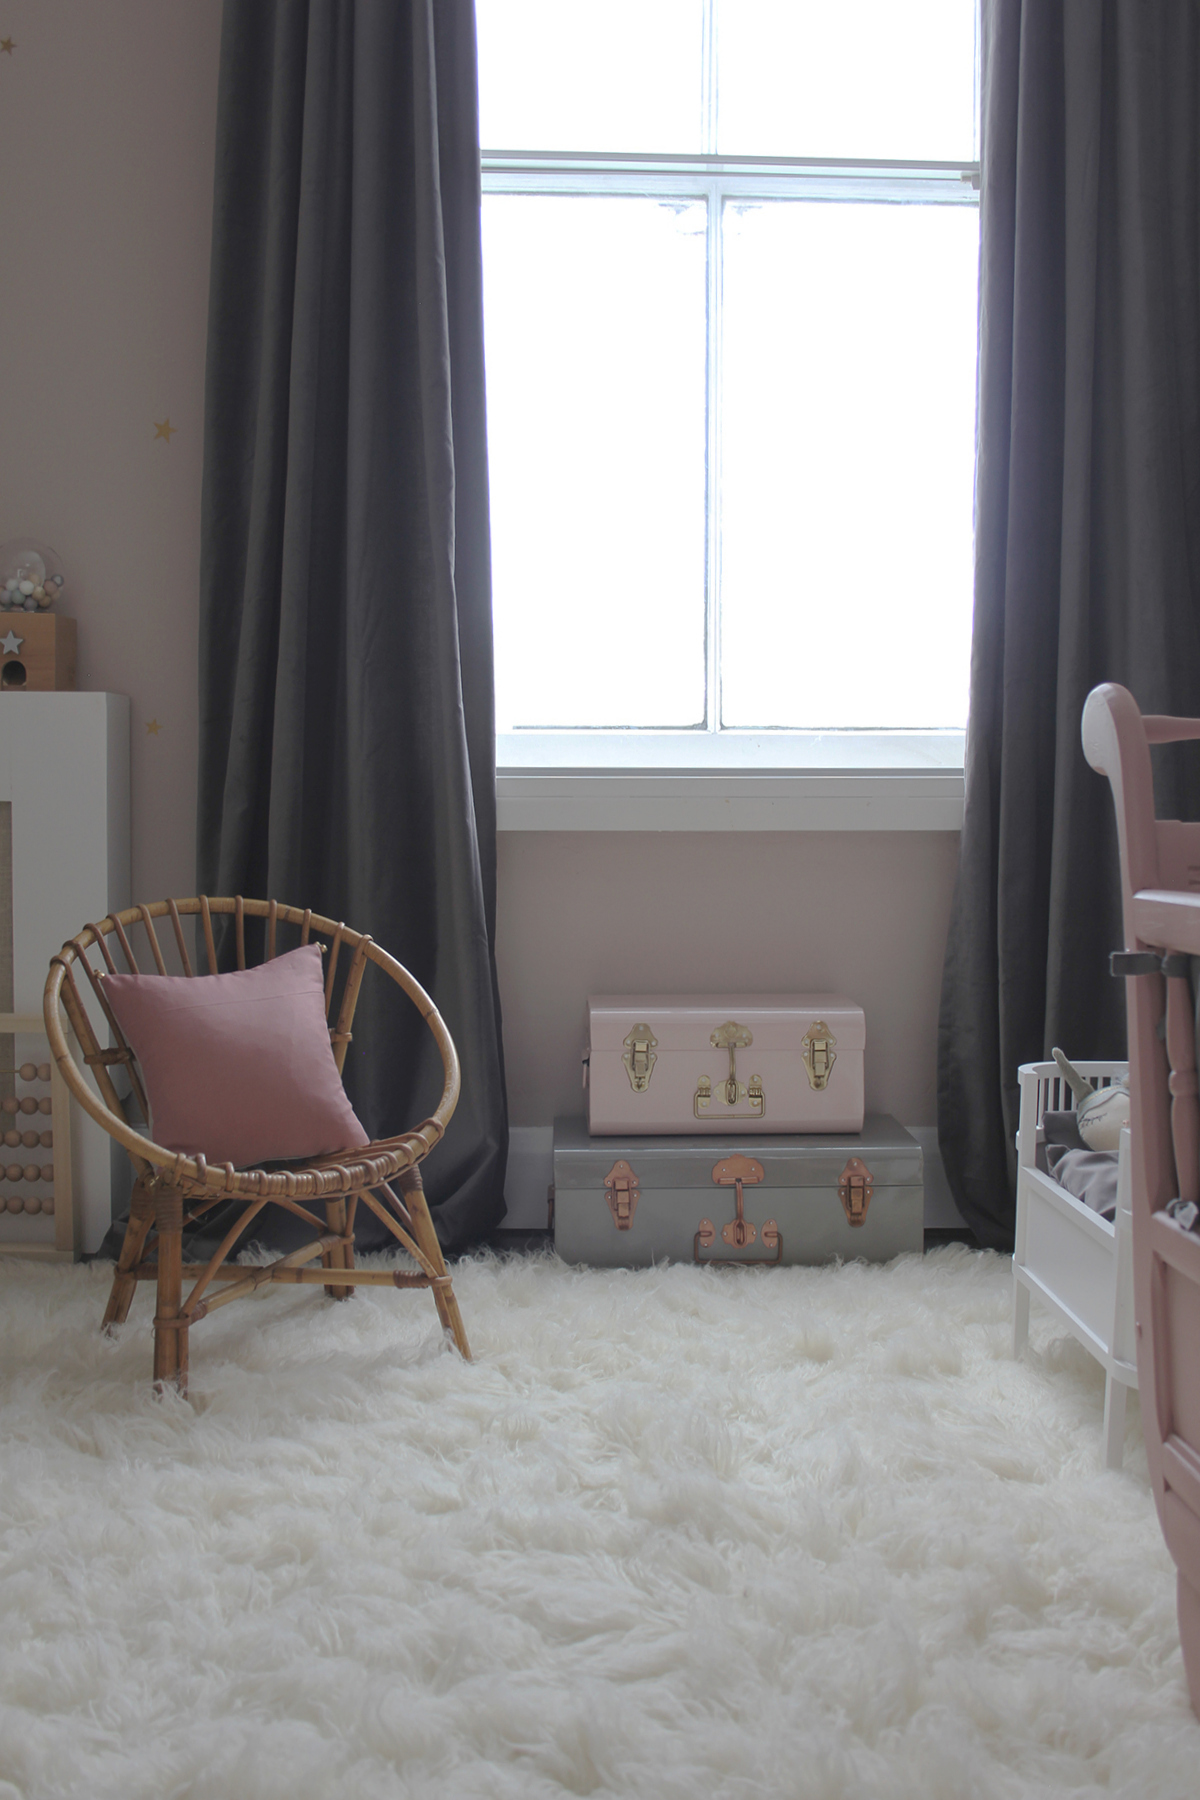 Preciously Me blog : One Room Challenge - Nursery